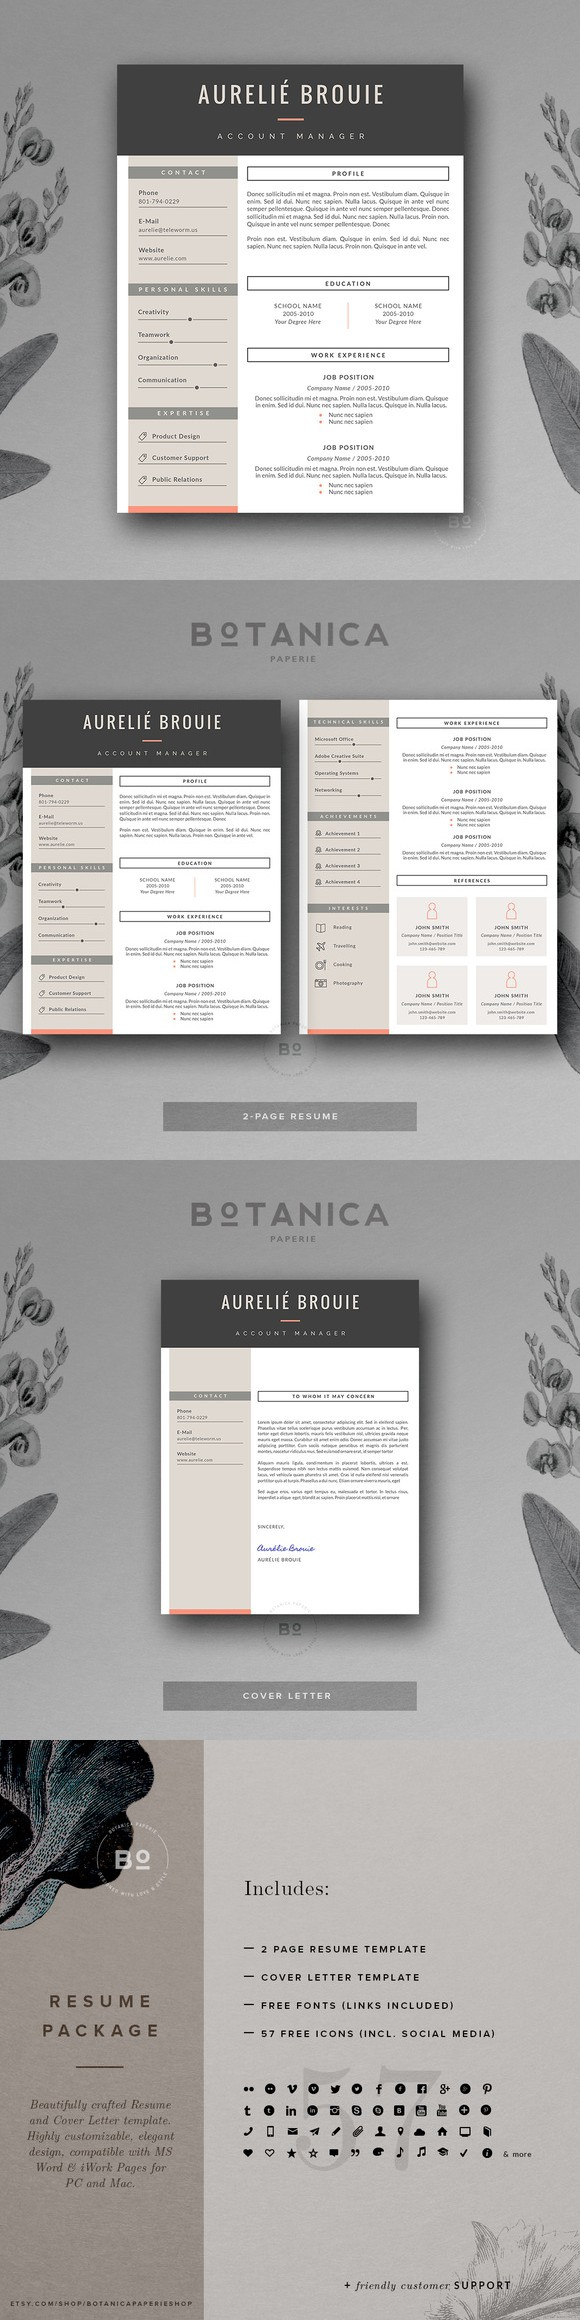 CV Template for MS Word | Cv template, Simple resume ...